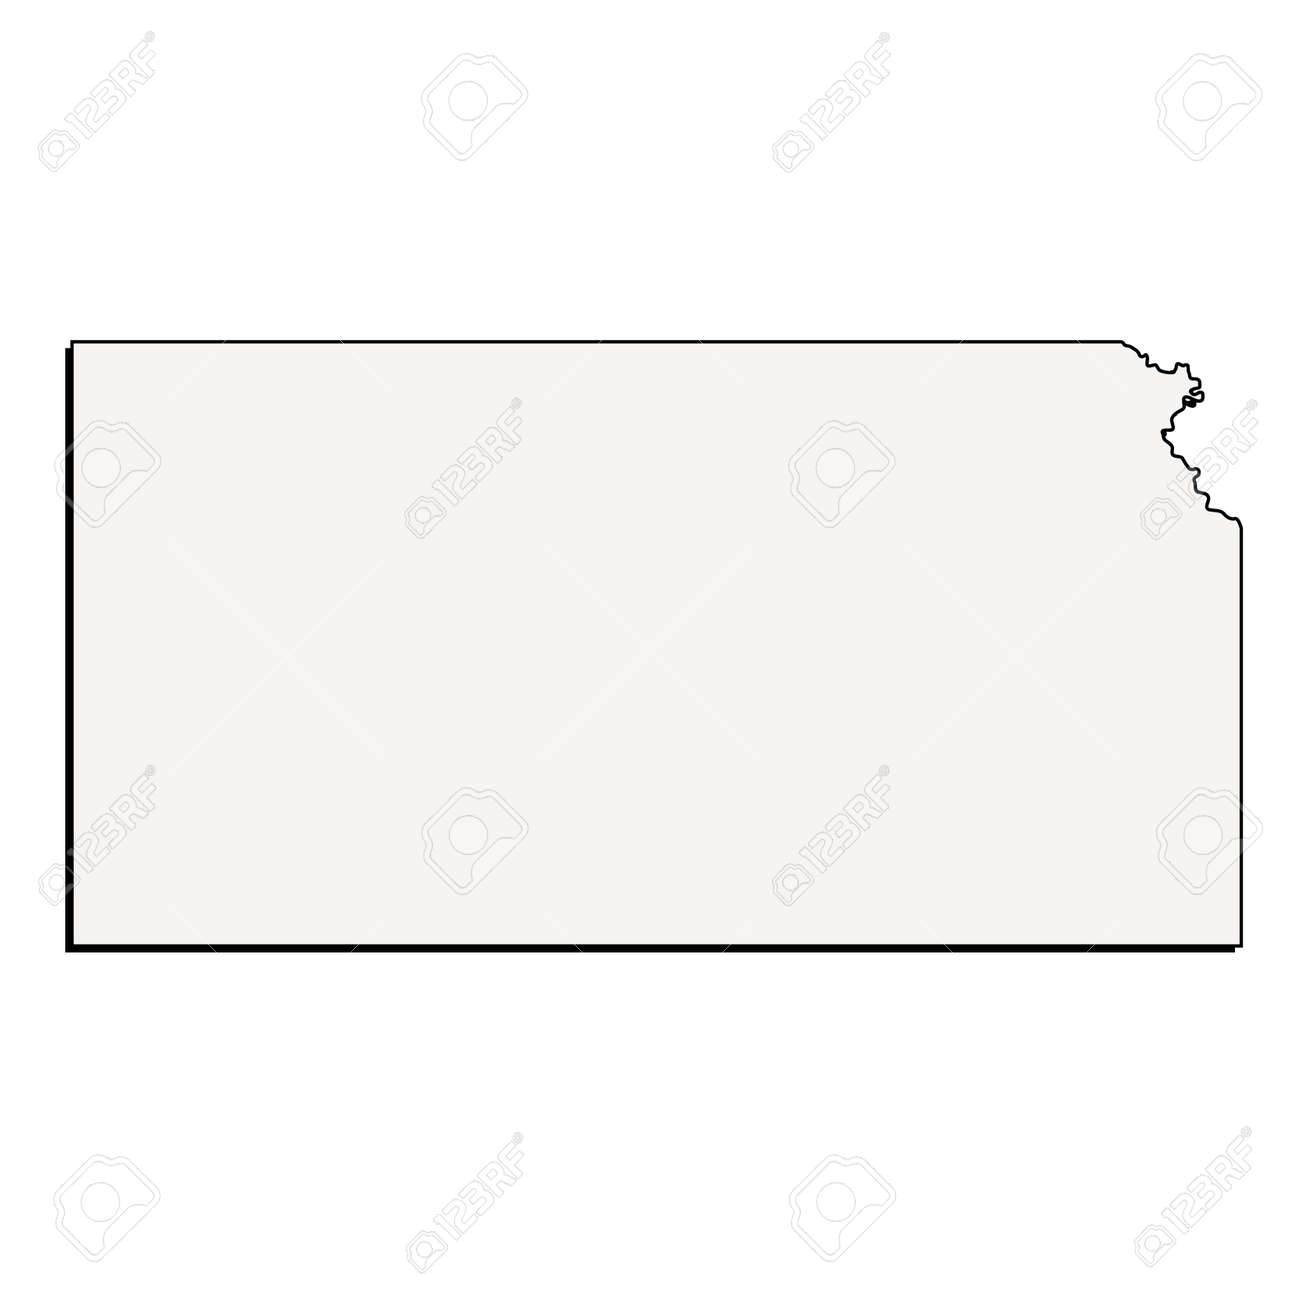 Vector Kansas State 3D Outline Map on friend kansas map, iowa kansas map, wichita kansas map, google kansas map, zip code kansas map, downtown kansas city map, old kansas city map, cartoon kansas map, vintage kansas map,